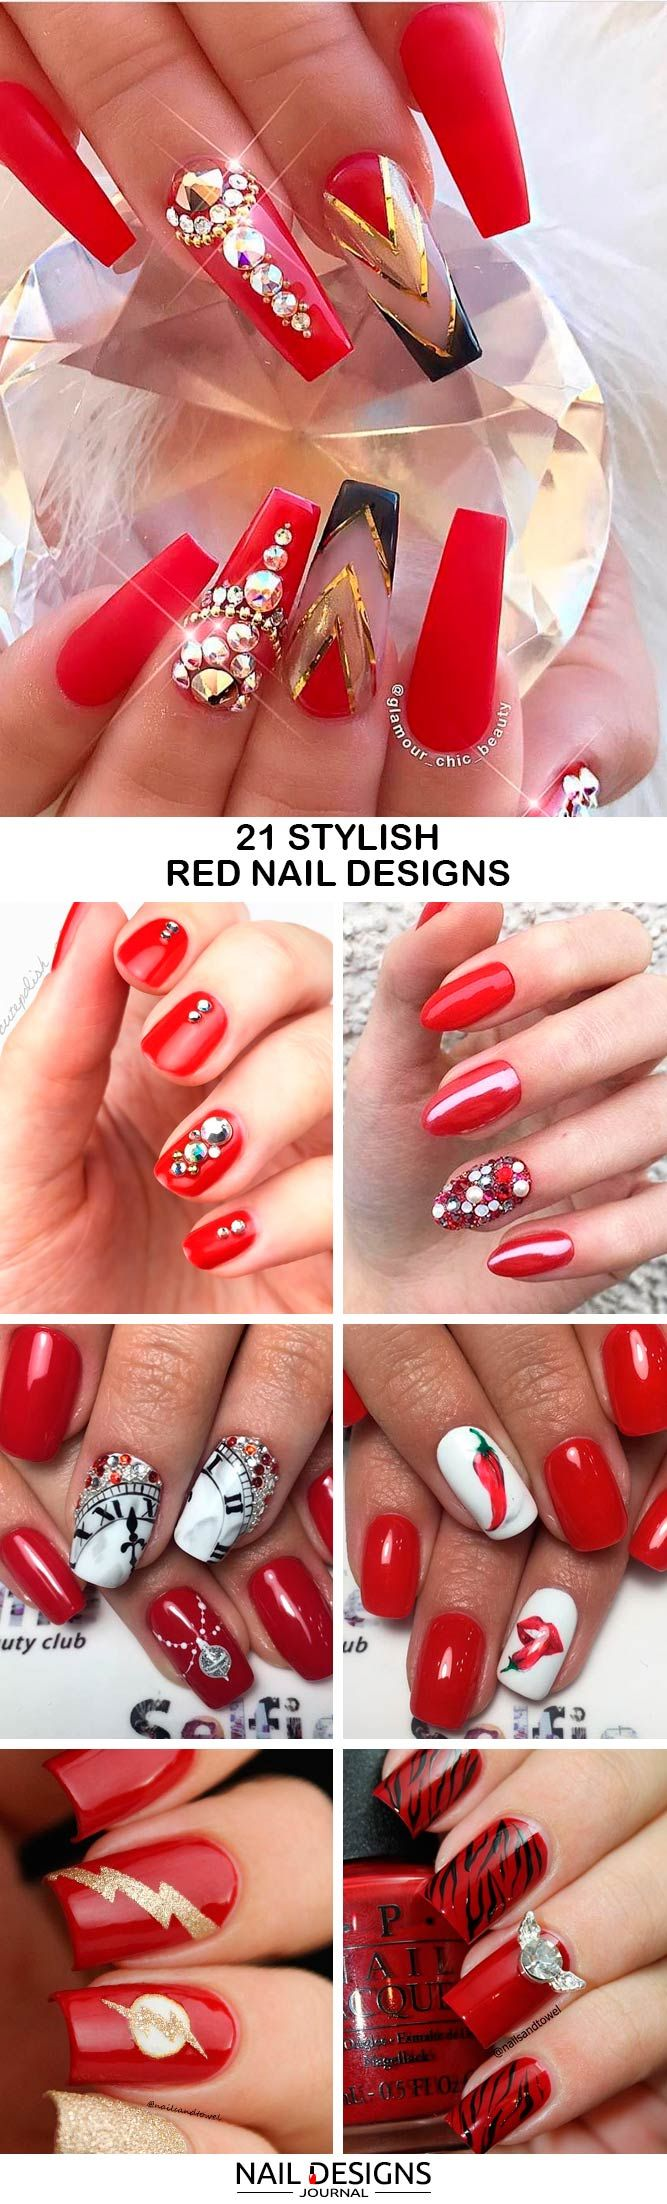 Red Nail Designs Truly Stand Out Among All Other Colors Besides Being Bright And Beautiful Polish Is Universal Also Very Powerful